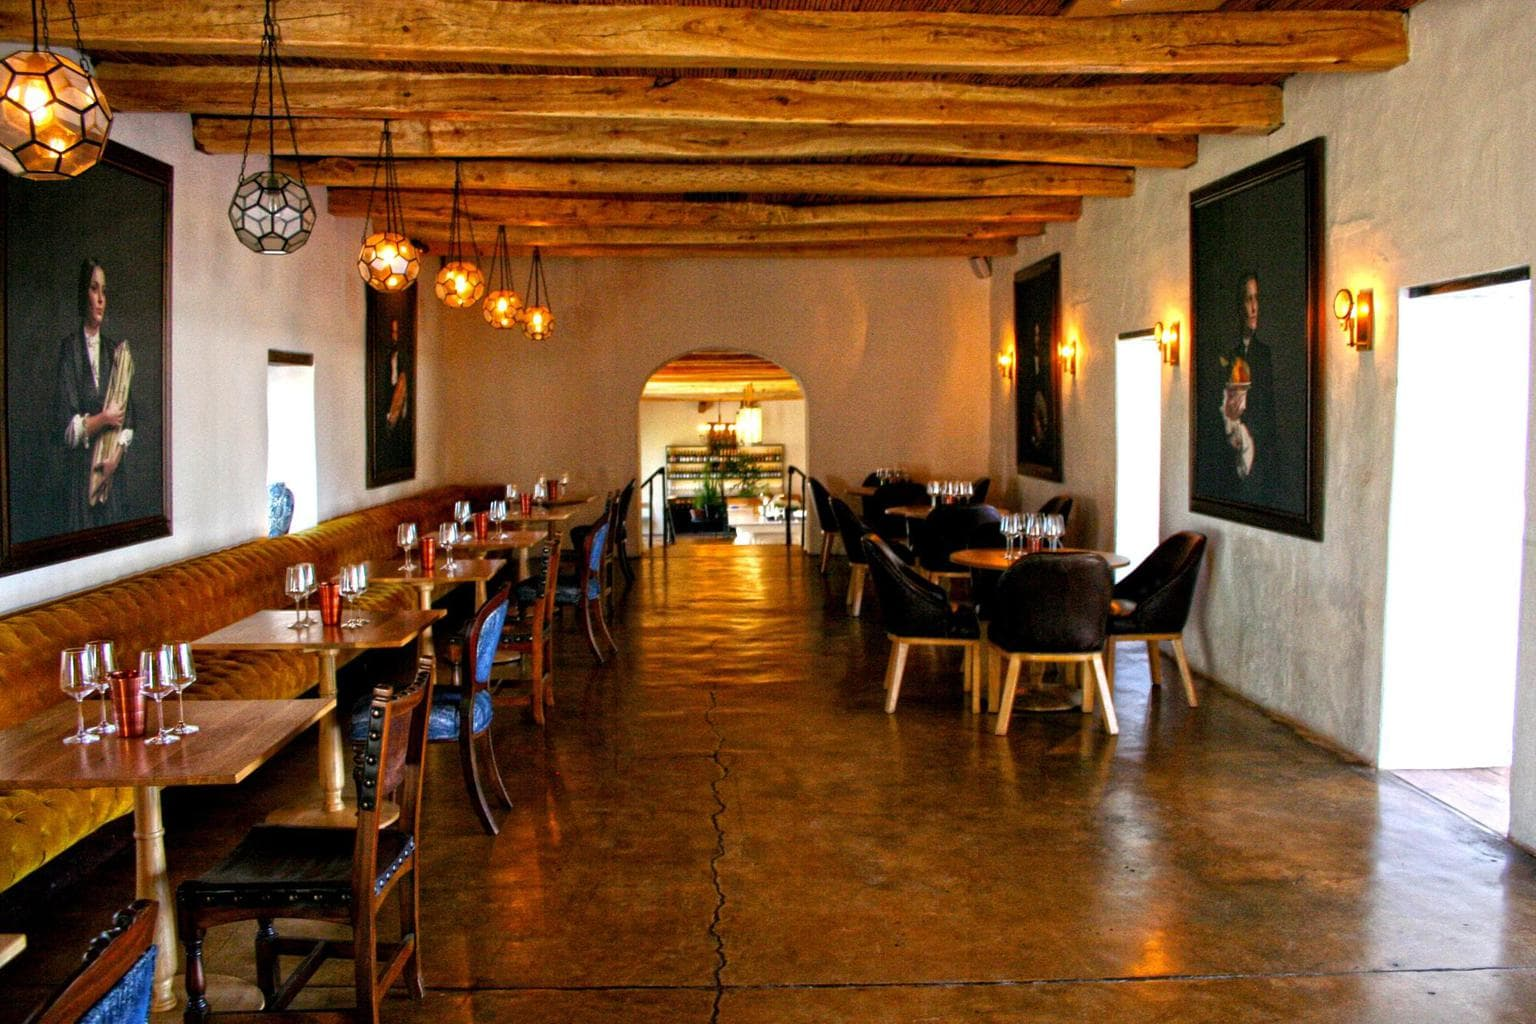 The Werf restaurant at Boschendal